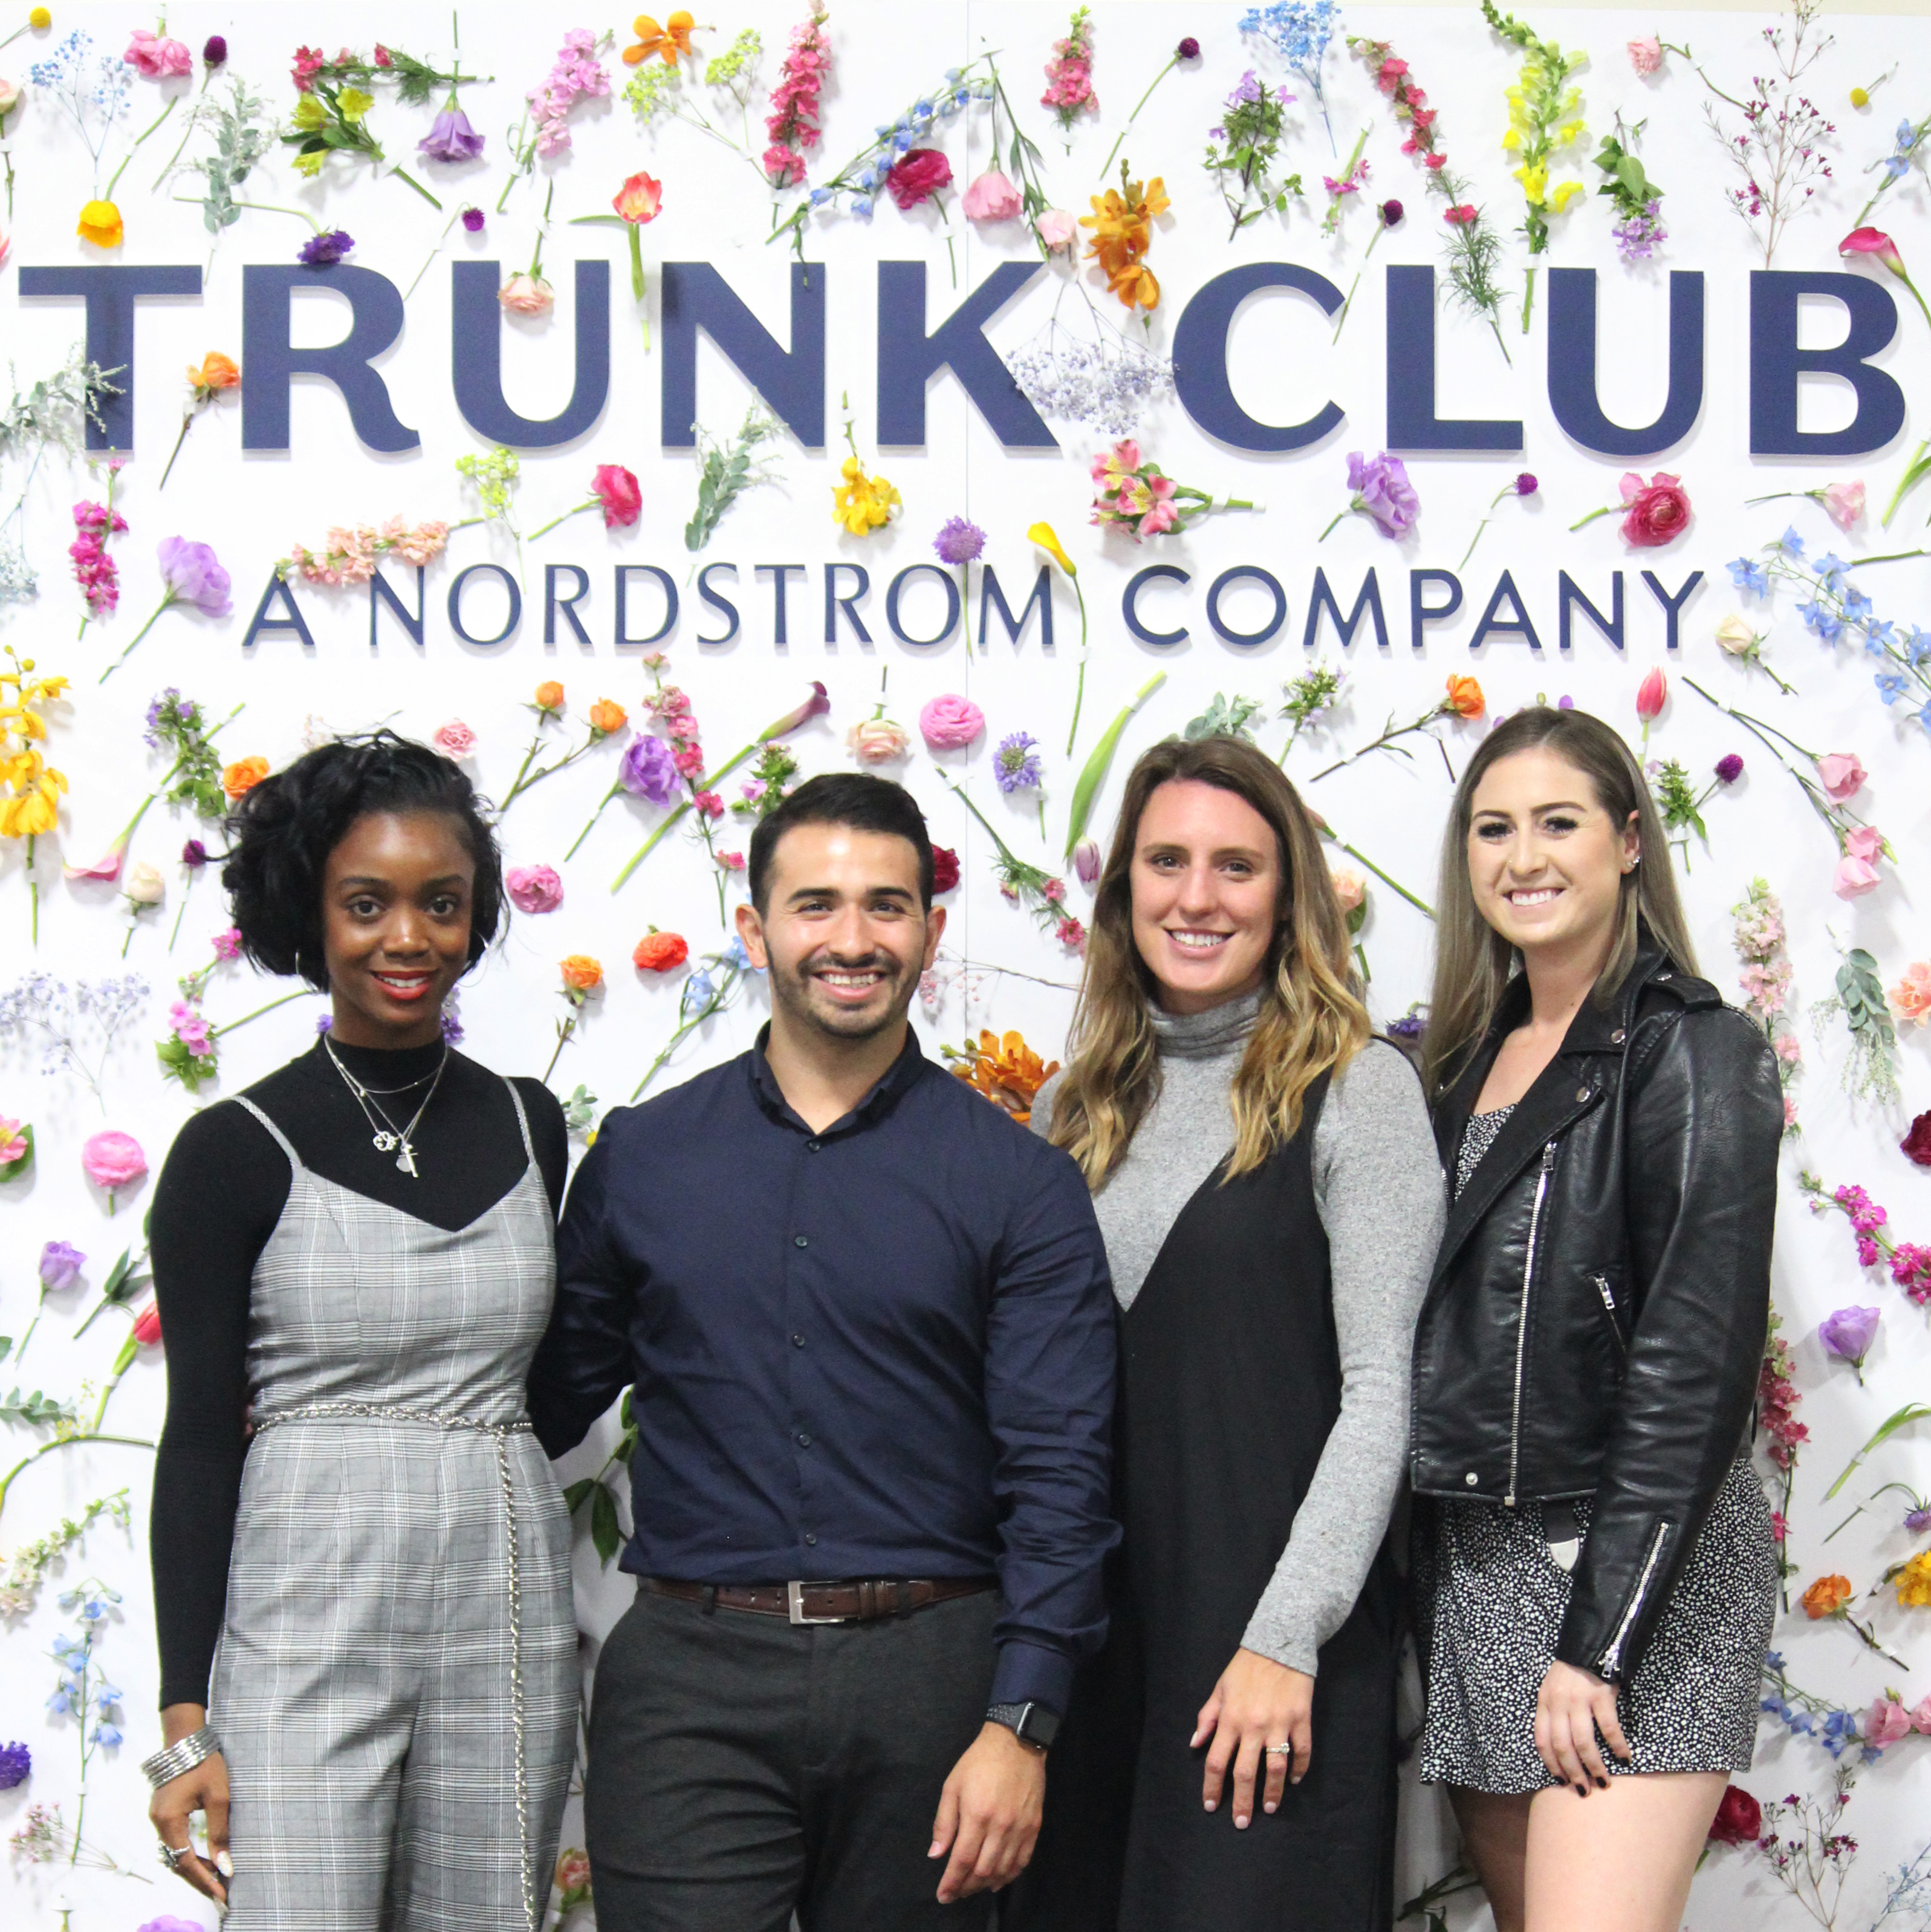 Group of four in front of a Trunk Club Instagram wall covered in flowers.